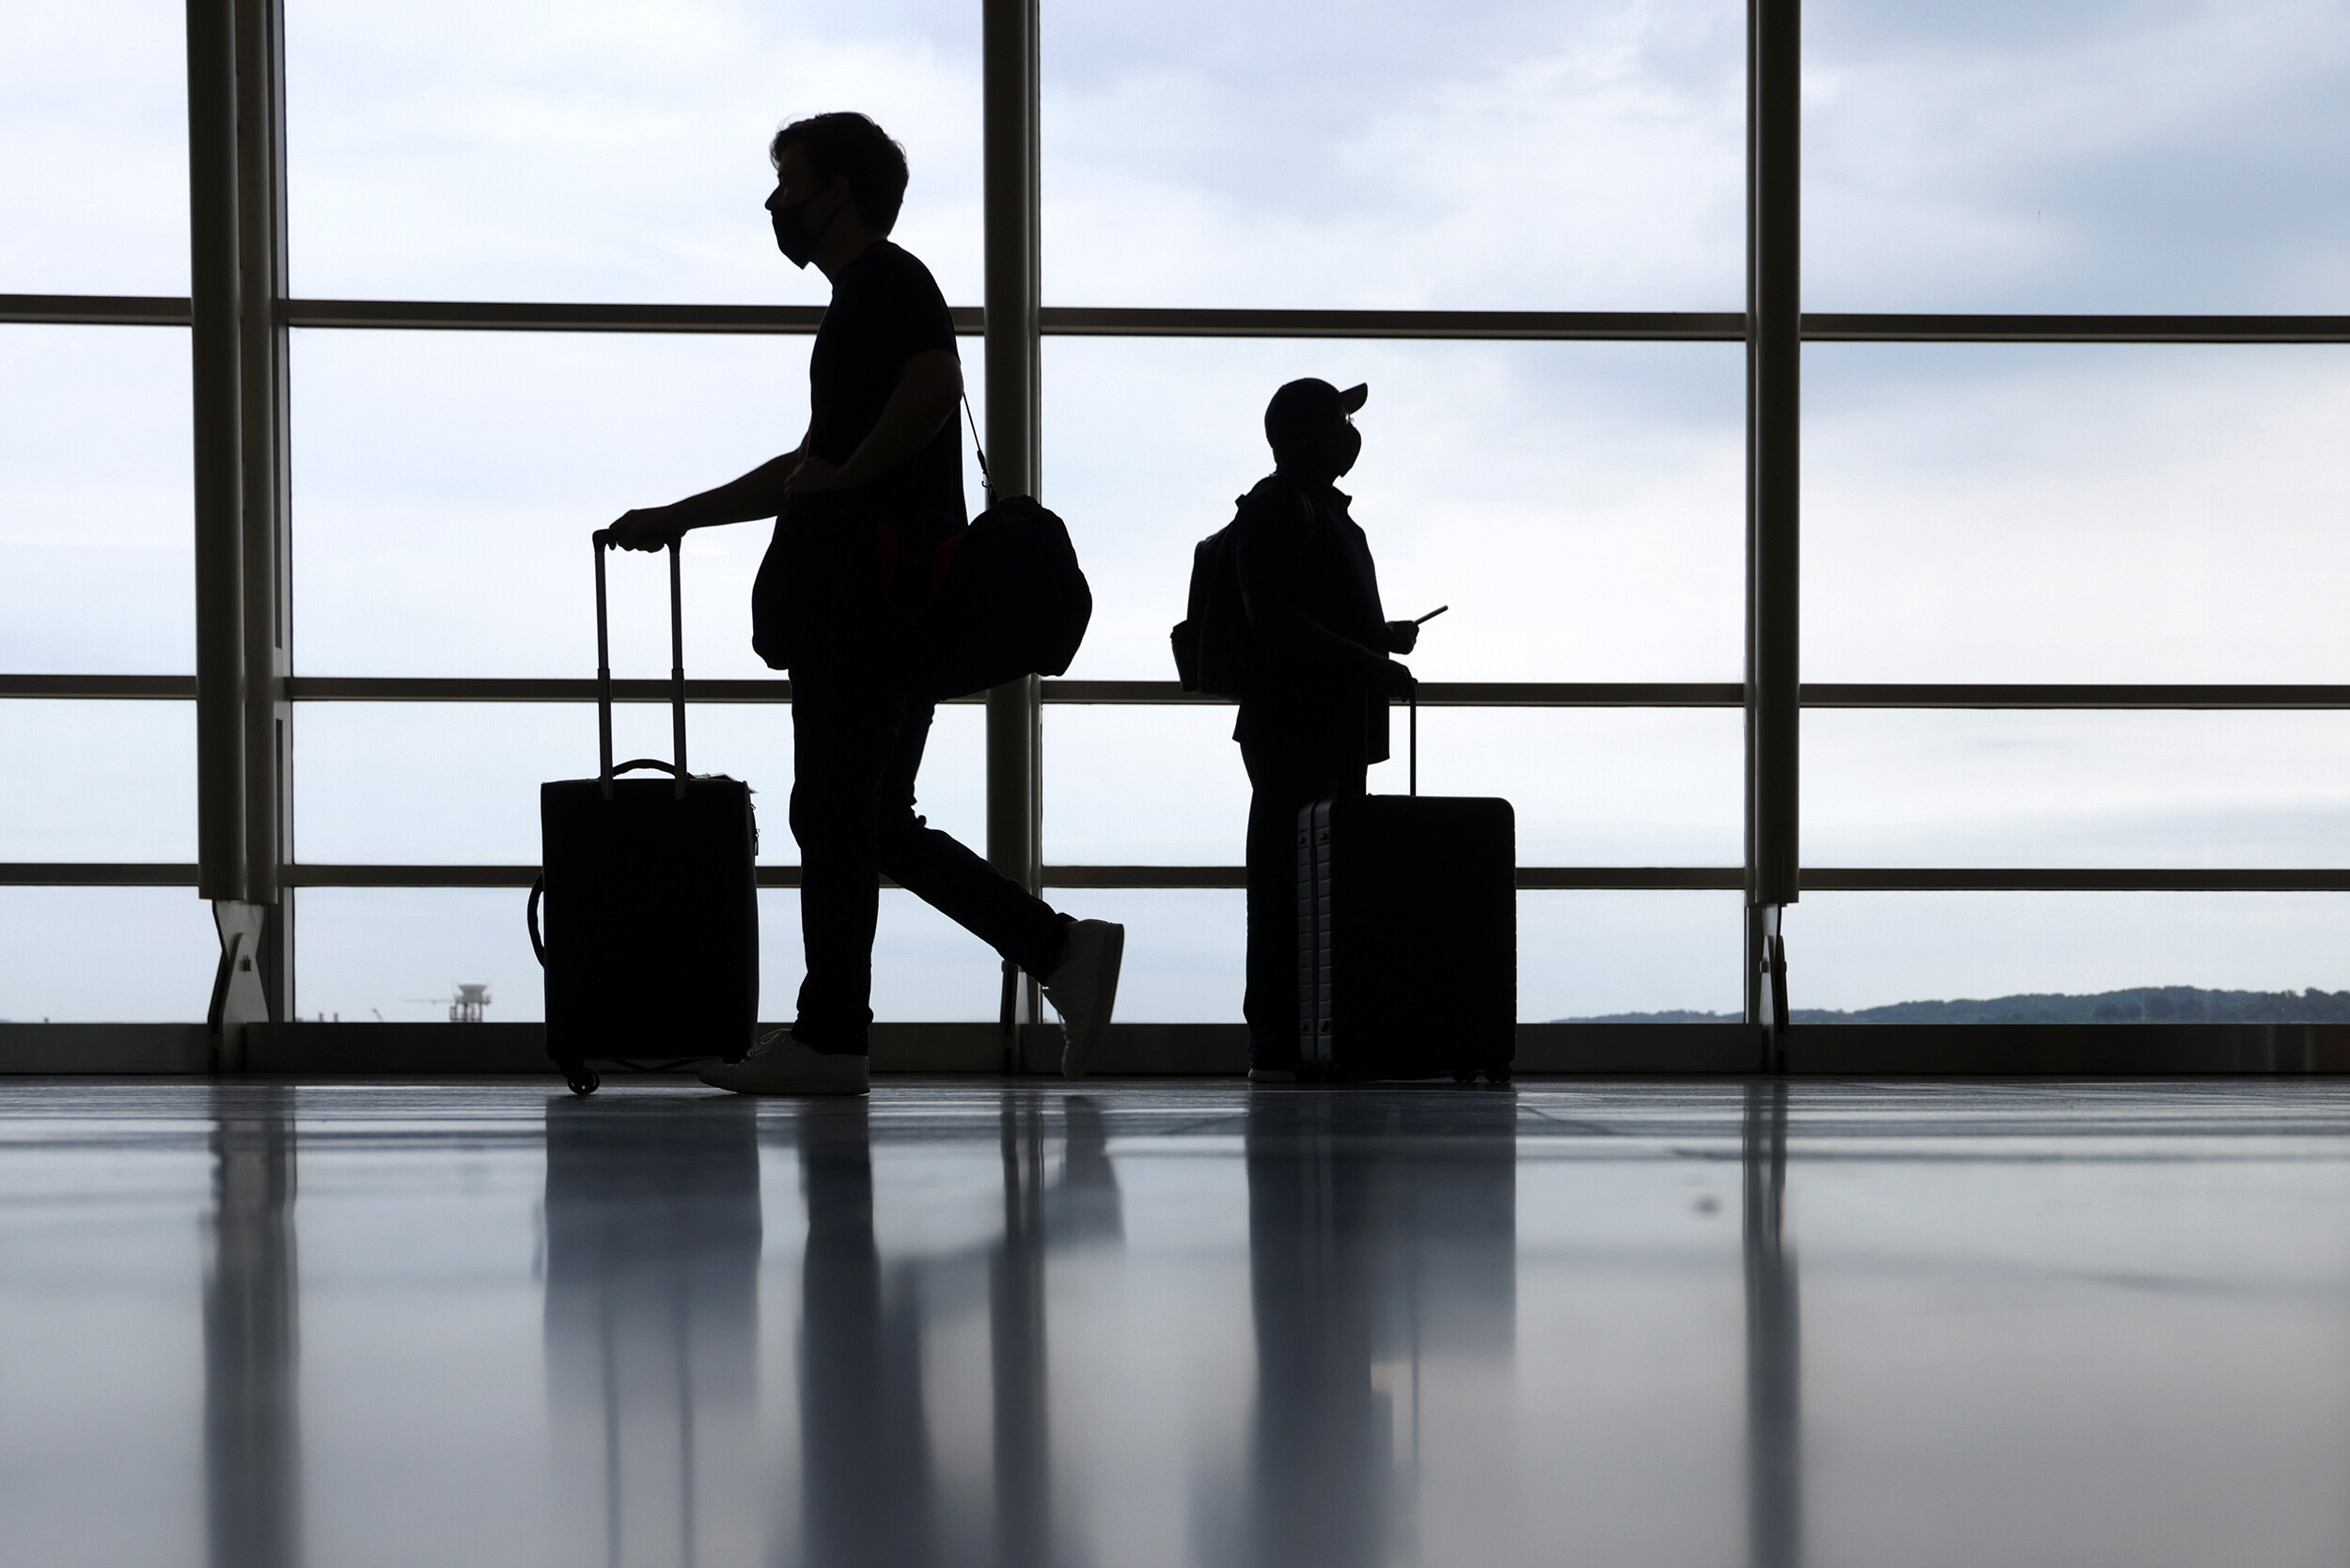 <i>Alex Wong/Getty Images</i><br/>Welcome news for millions of travelers arrived on Sept. 20 with the announcement of plans to allow fully vaccinated foreign air travelers into the United States starting in early November. The plans both loosen and tighten existing rules